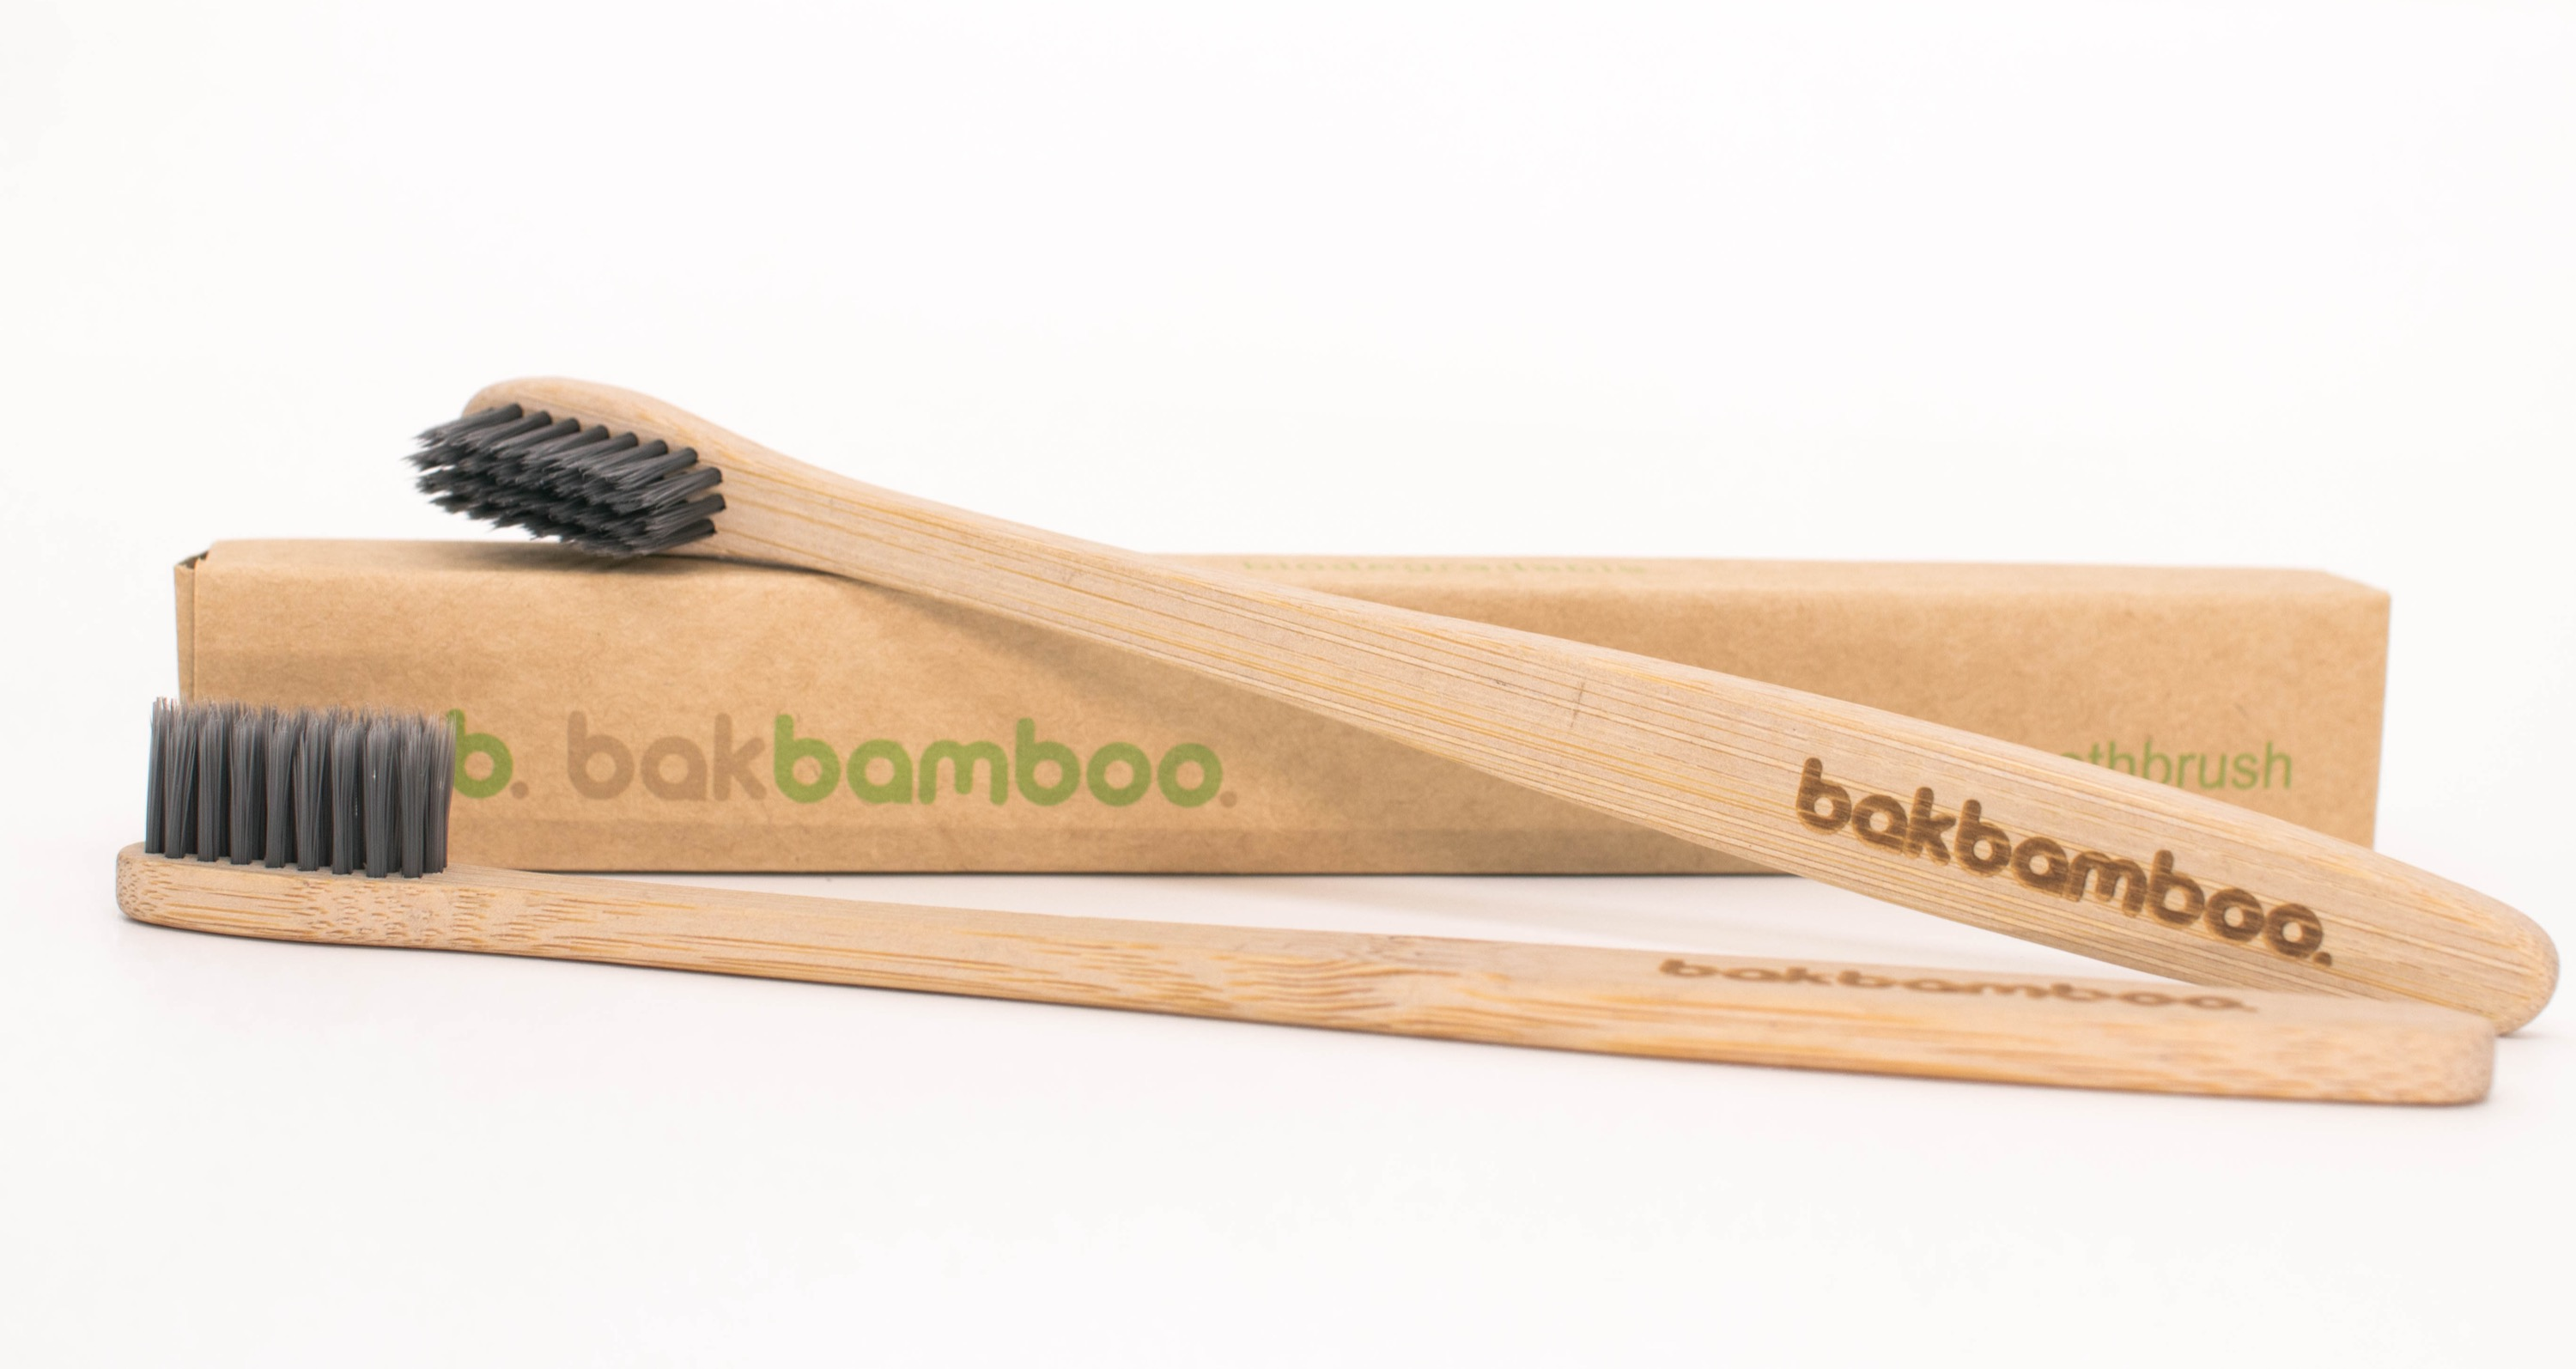 bamboo toothbrush with box.